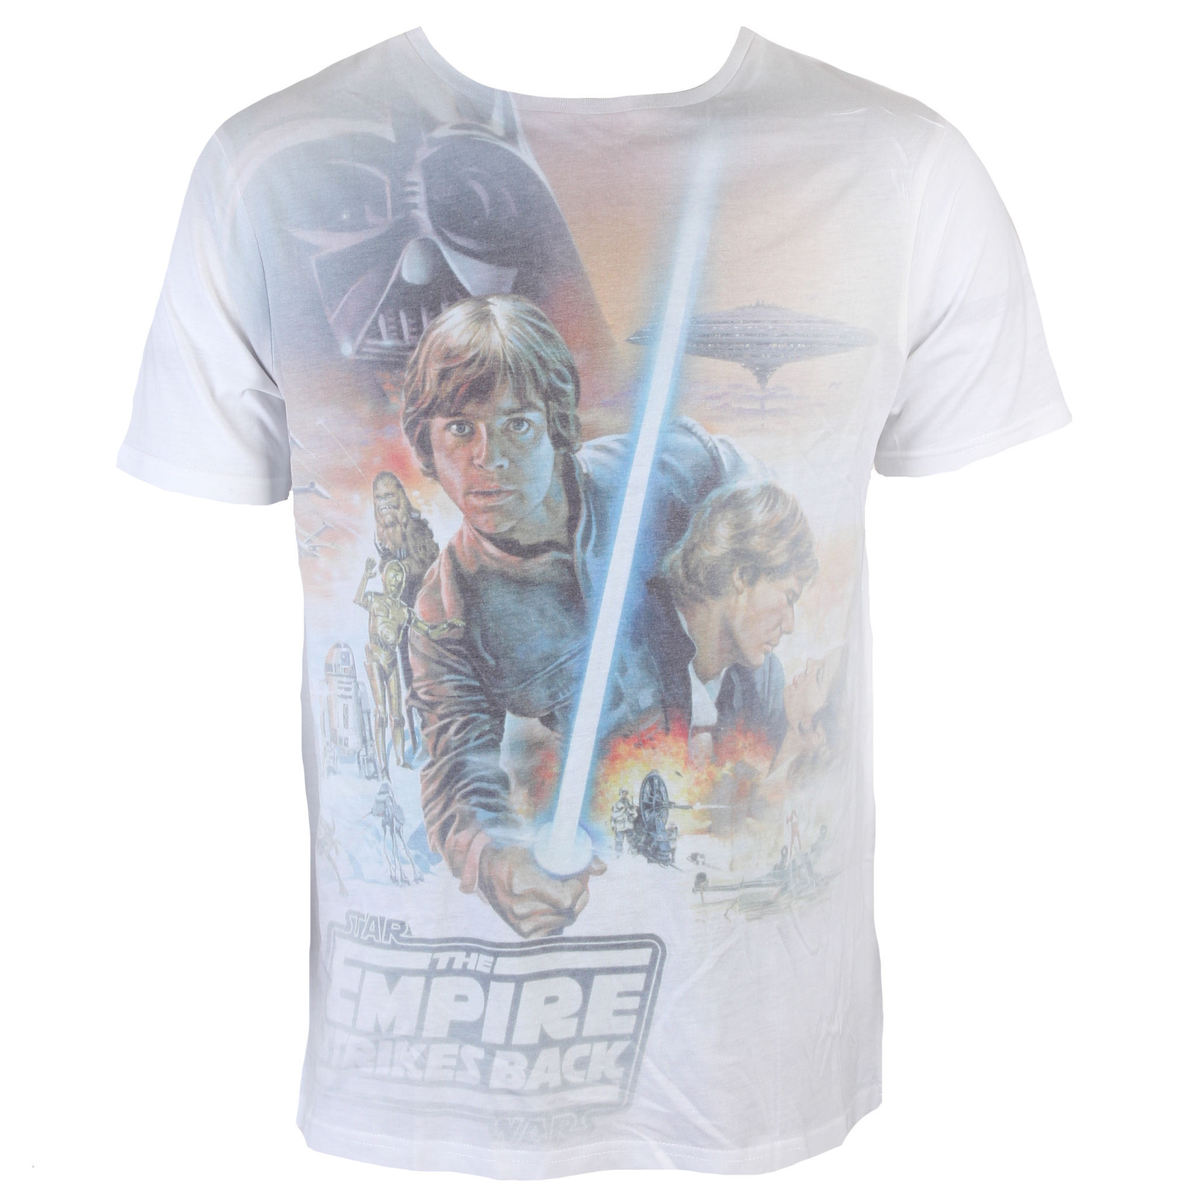 INDIEGO Star Wars Luke Skywalker Sublimation šedá bílá